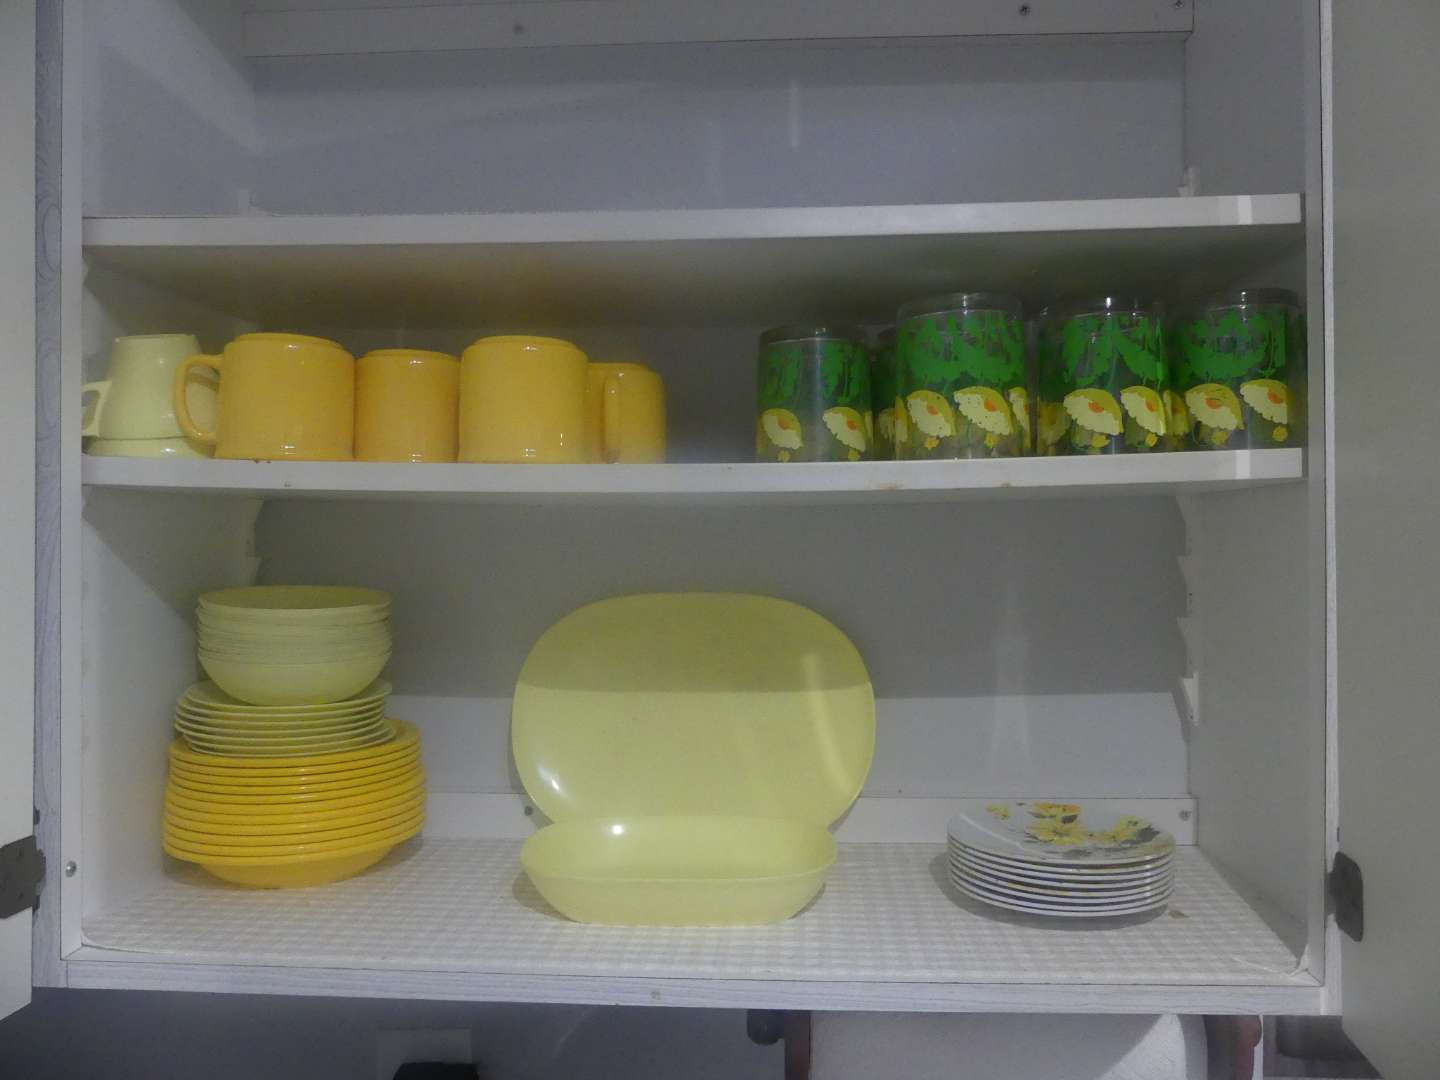 Lot #41 2 Shelves of Melamine Dishes and Cups/Mugs